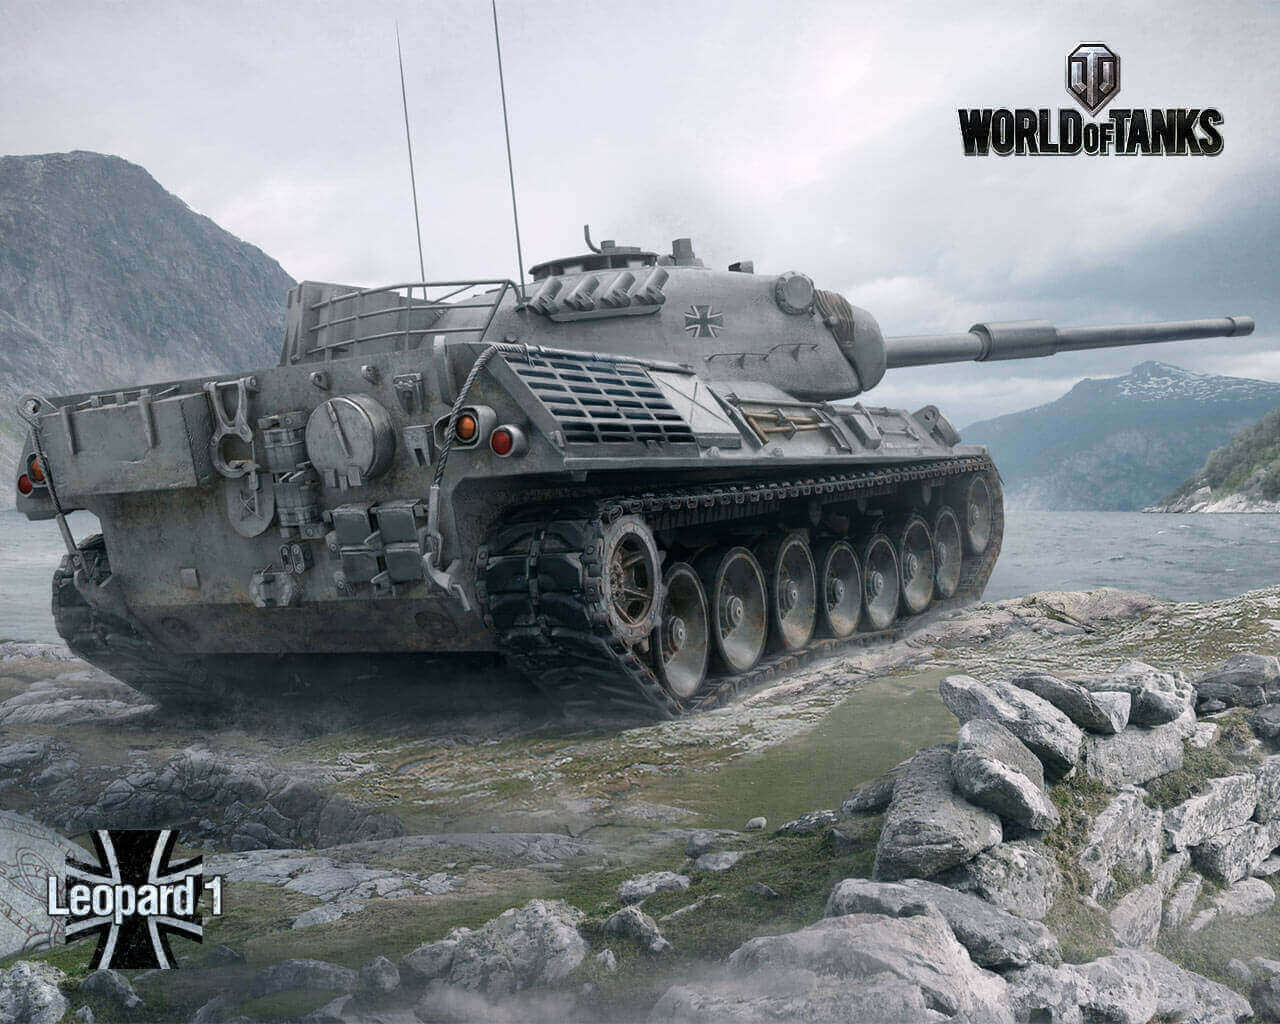 July Posters: Leopard 1